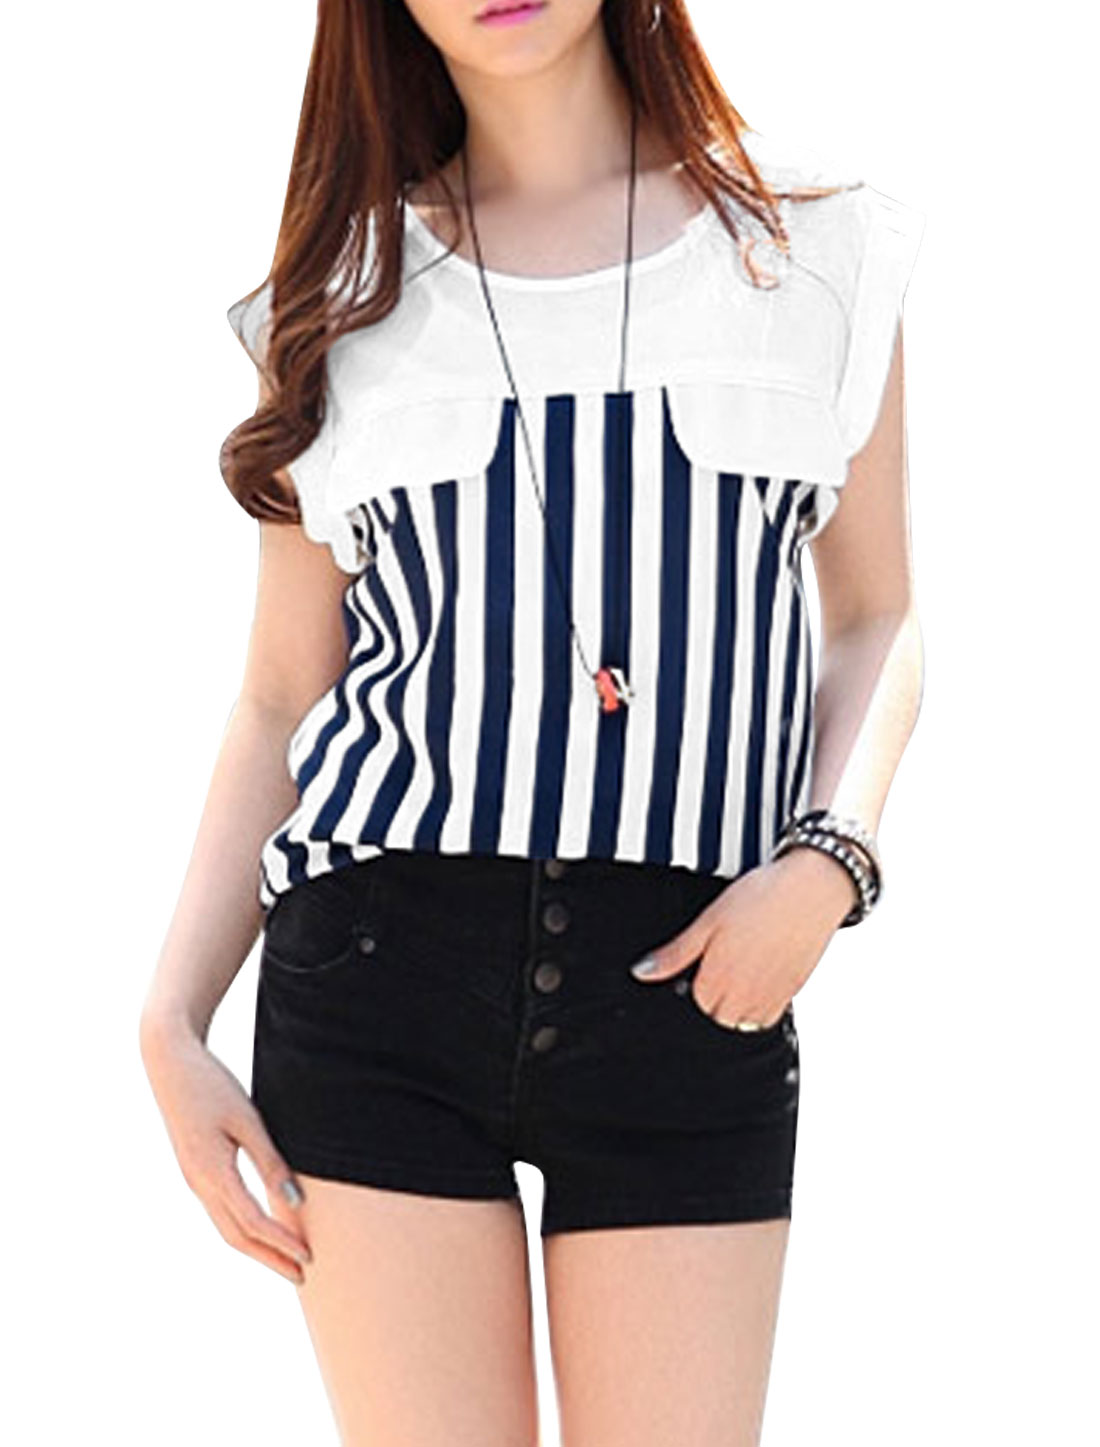 Lady Summer Sleeveless Stripes Semi Sheer T-Shirt Dark Blue S